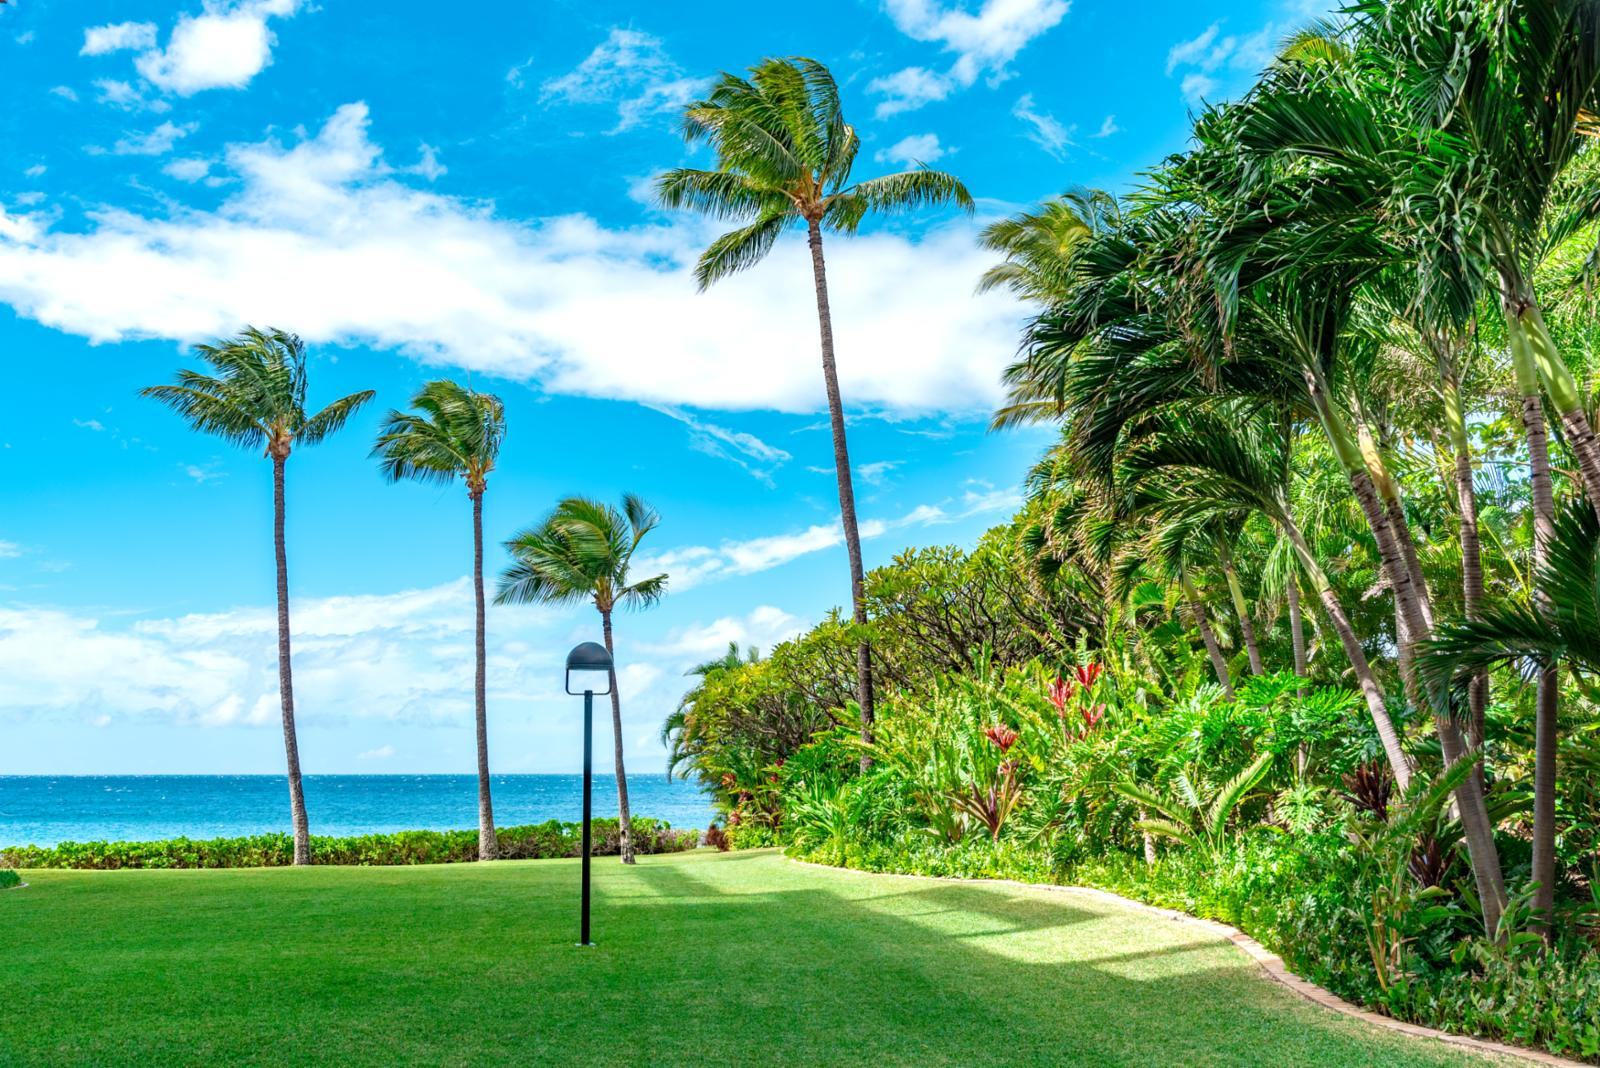 Welcome to the world famous Polo Beach Club located in the heart of Wailea!